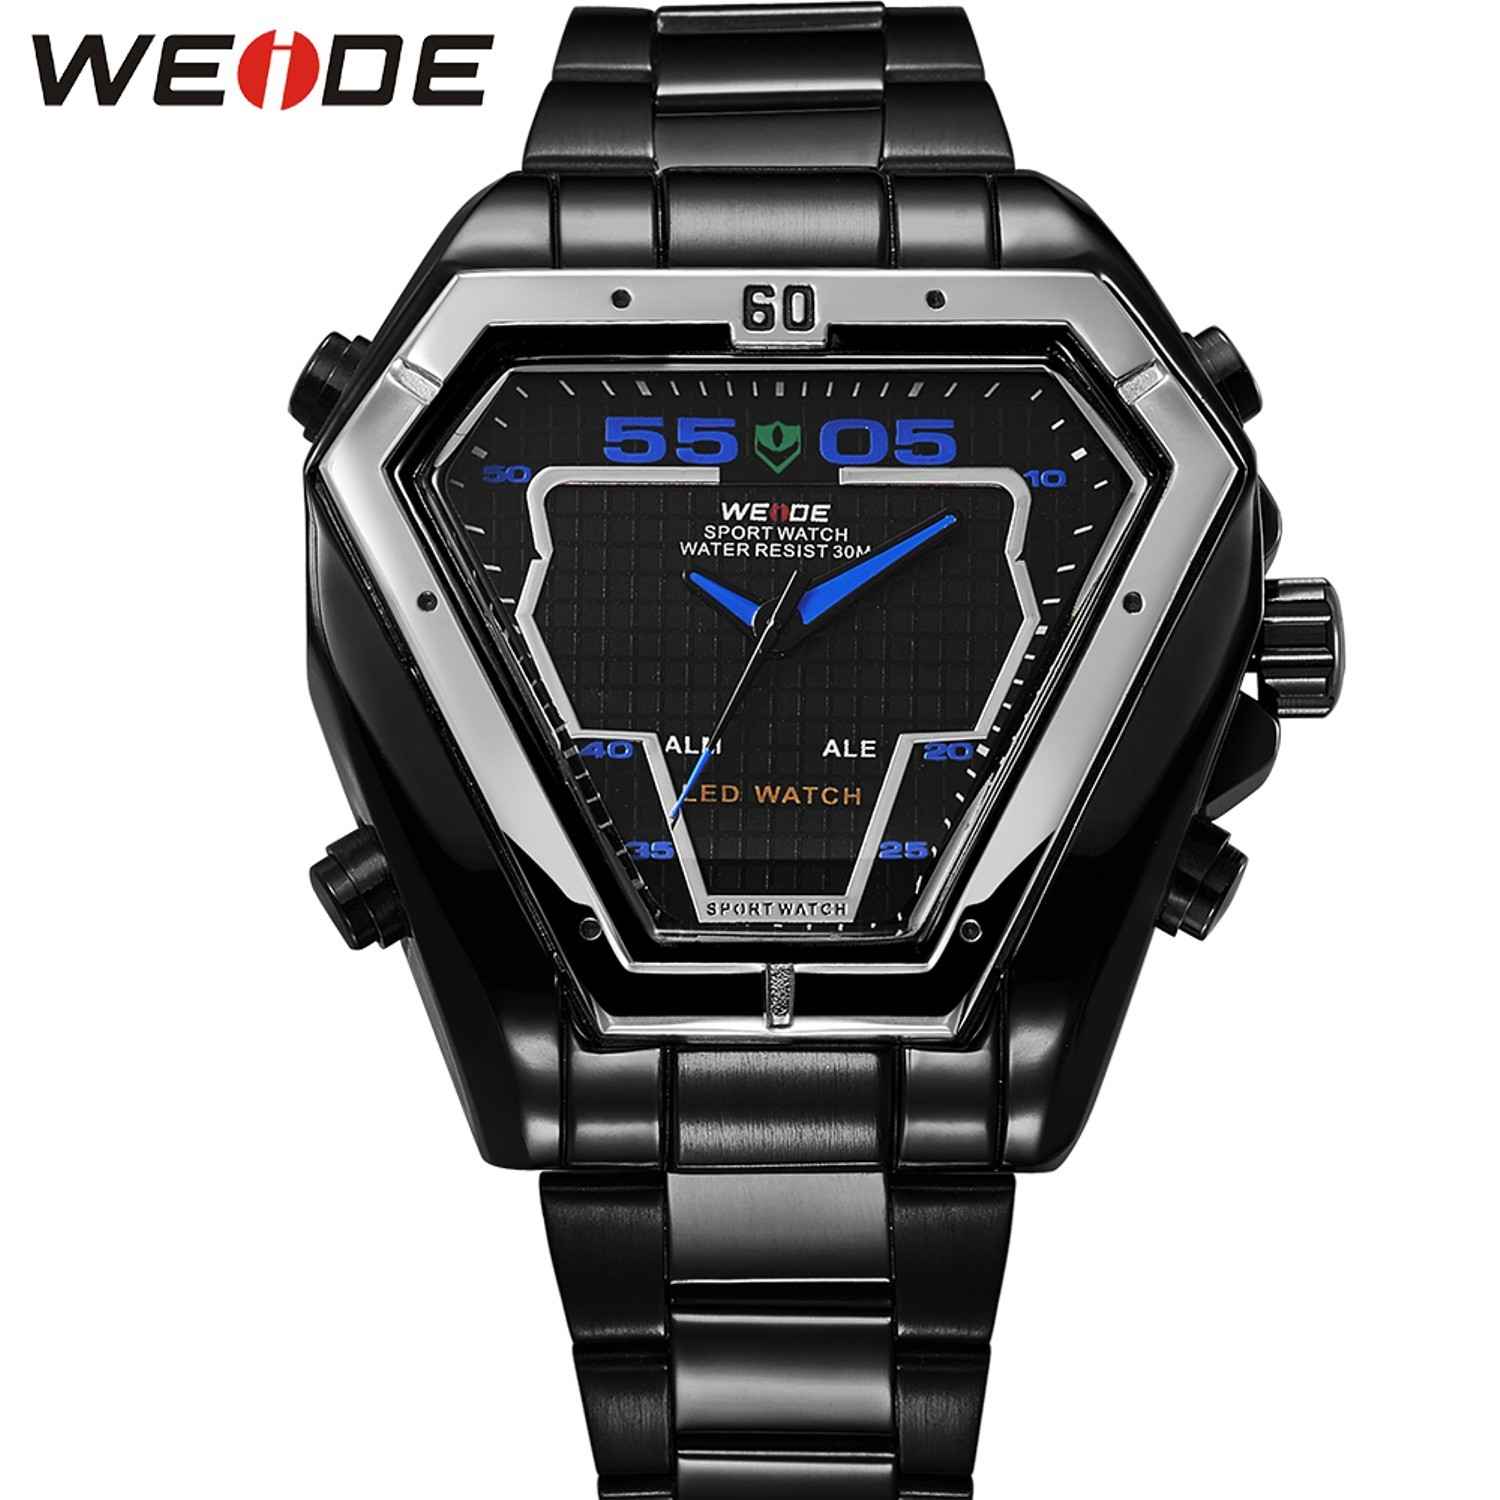 WEIDE-Irregular-Analog-LED-Digital-Watch-Men-Quartz-Dual-Movement-Stainless-Steel-Bracelet-Mens-Waterproof-Military_1500x1500_STRETCH_552.jpg